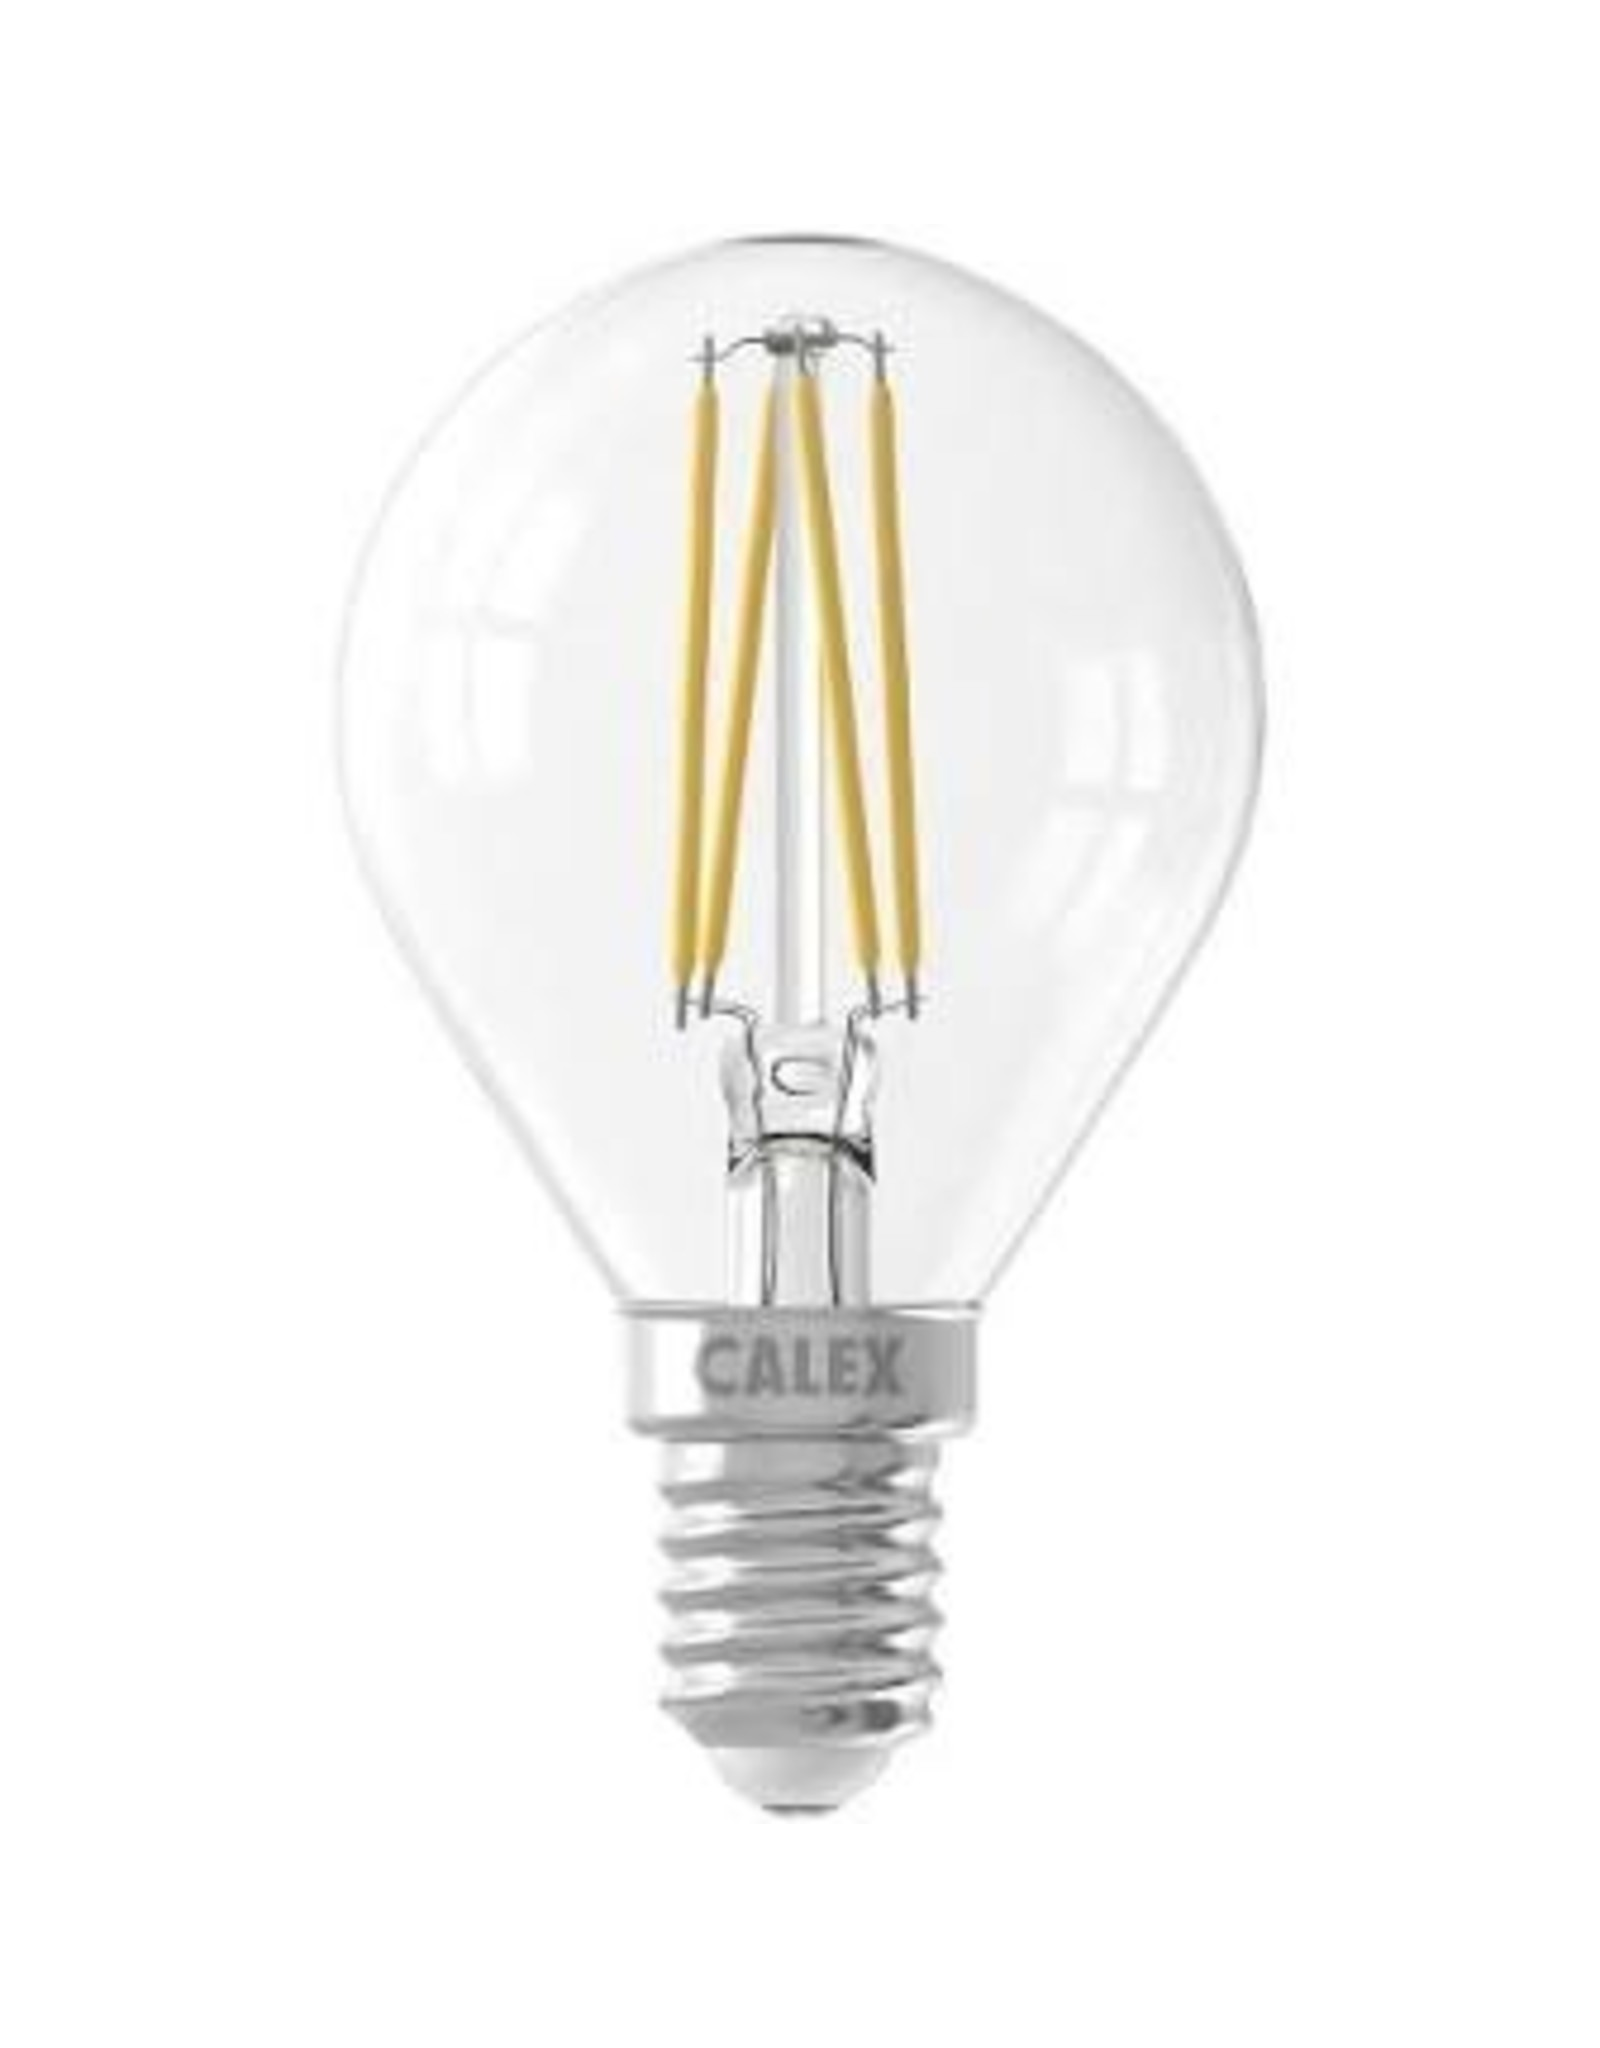 Calex LED Full Glass Filament Ball-lamp 220-240V 3,5W 350lm E14 P45, Clear 2700K CRI80 Dimmable, energy label A++